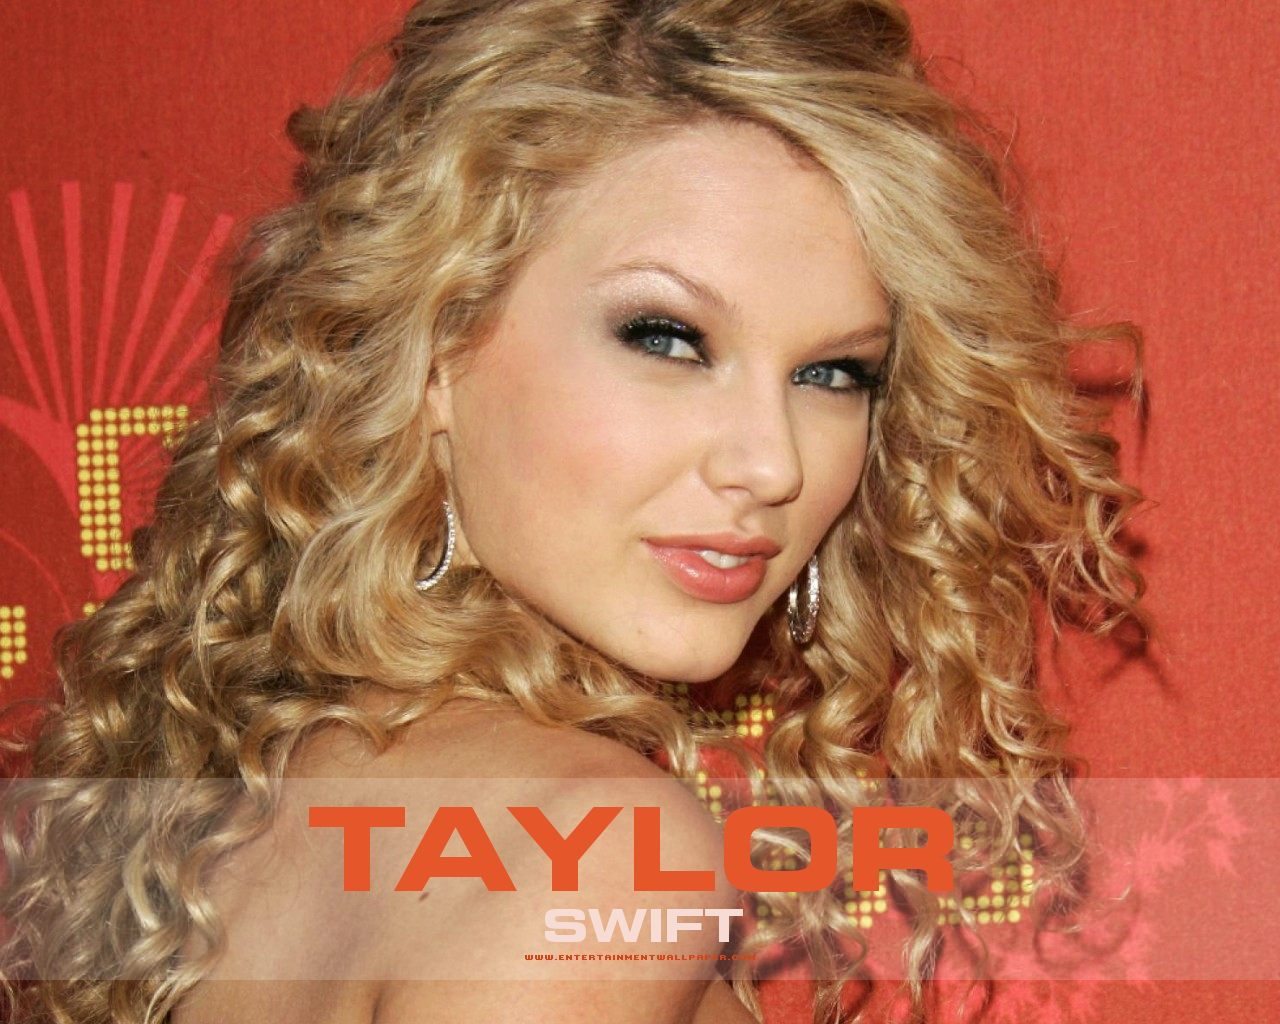 dangerr: taylor swift latest hd wallpapers